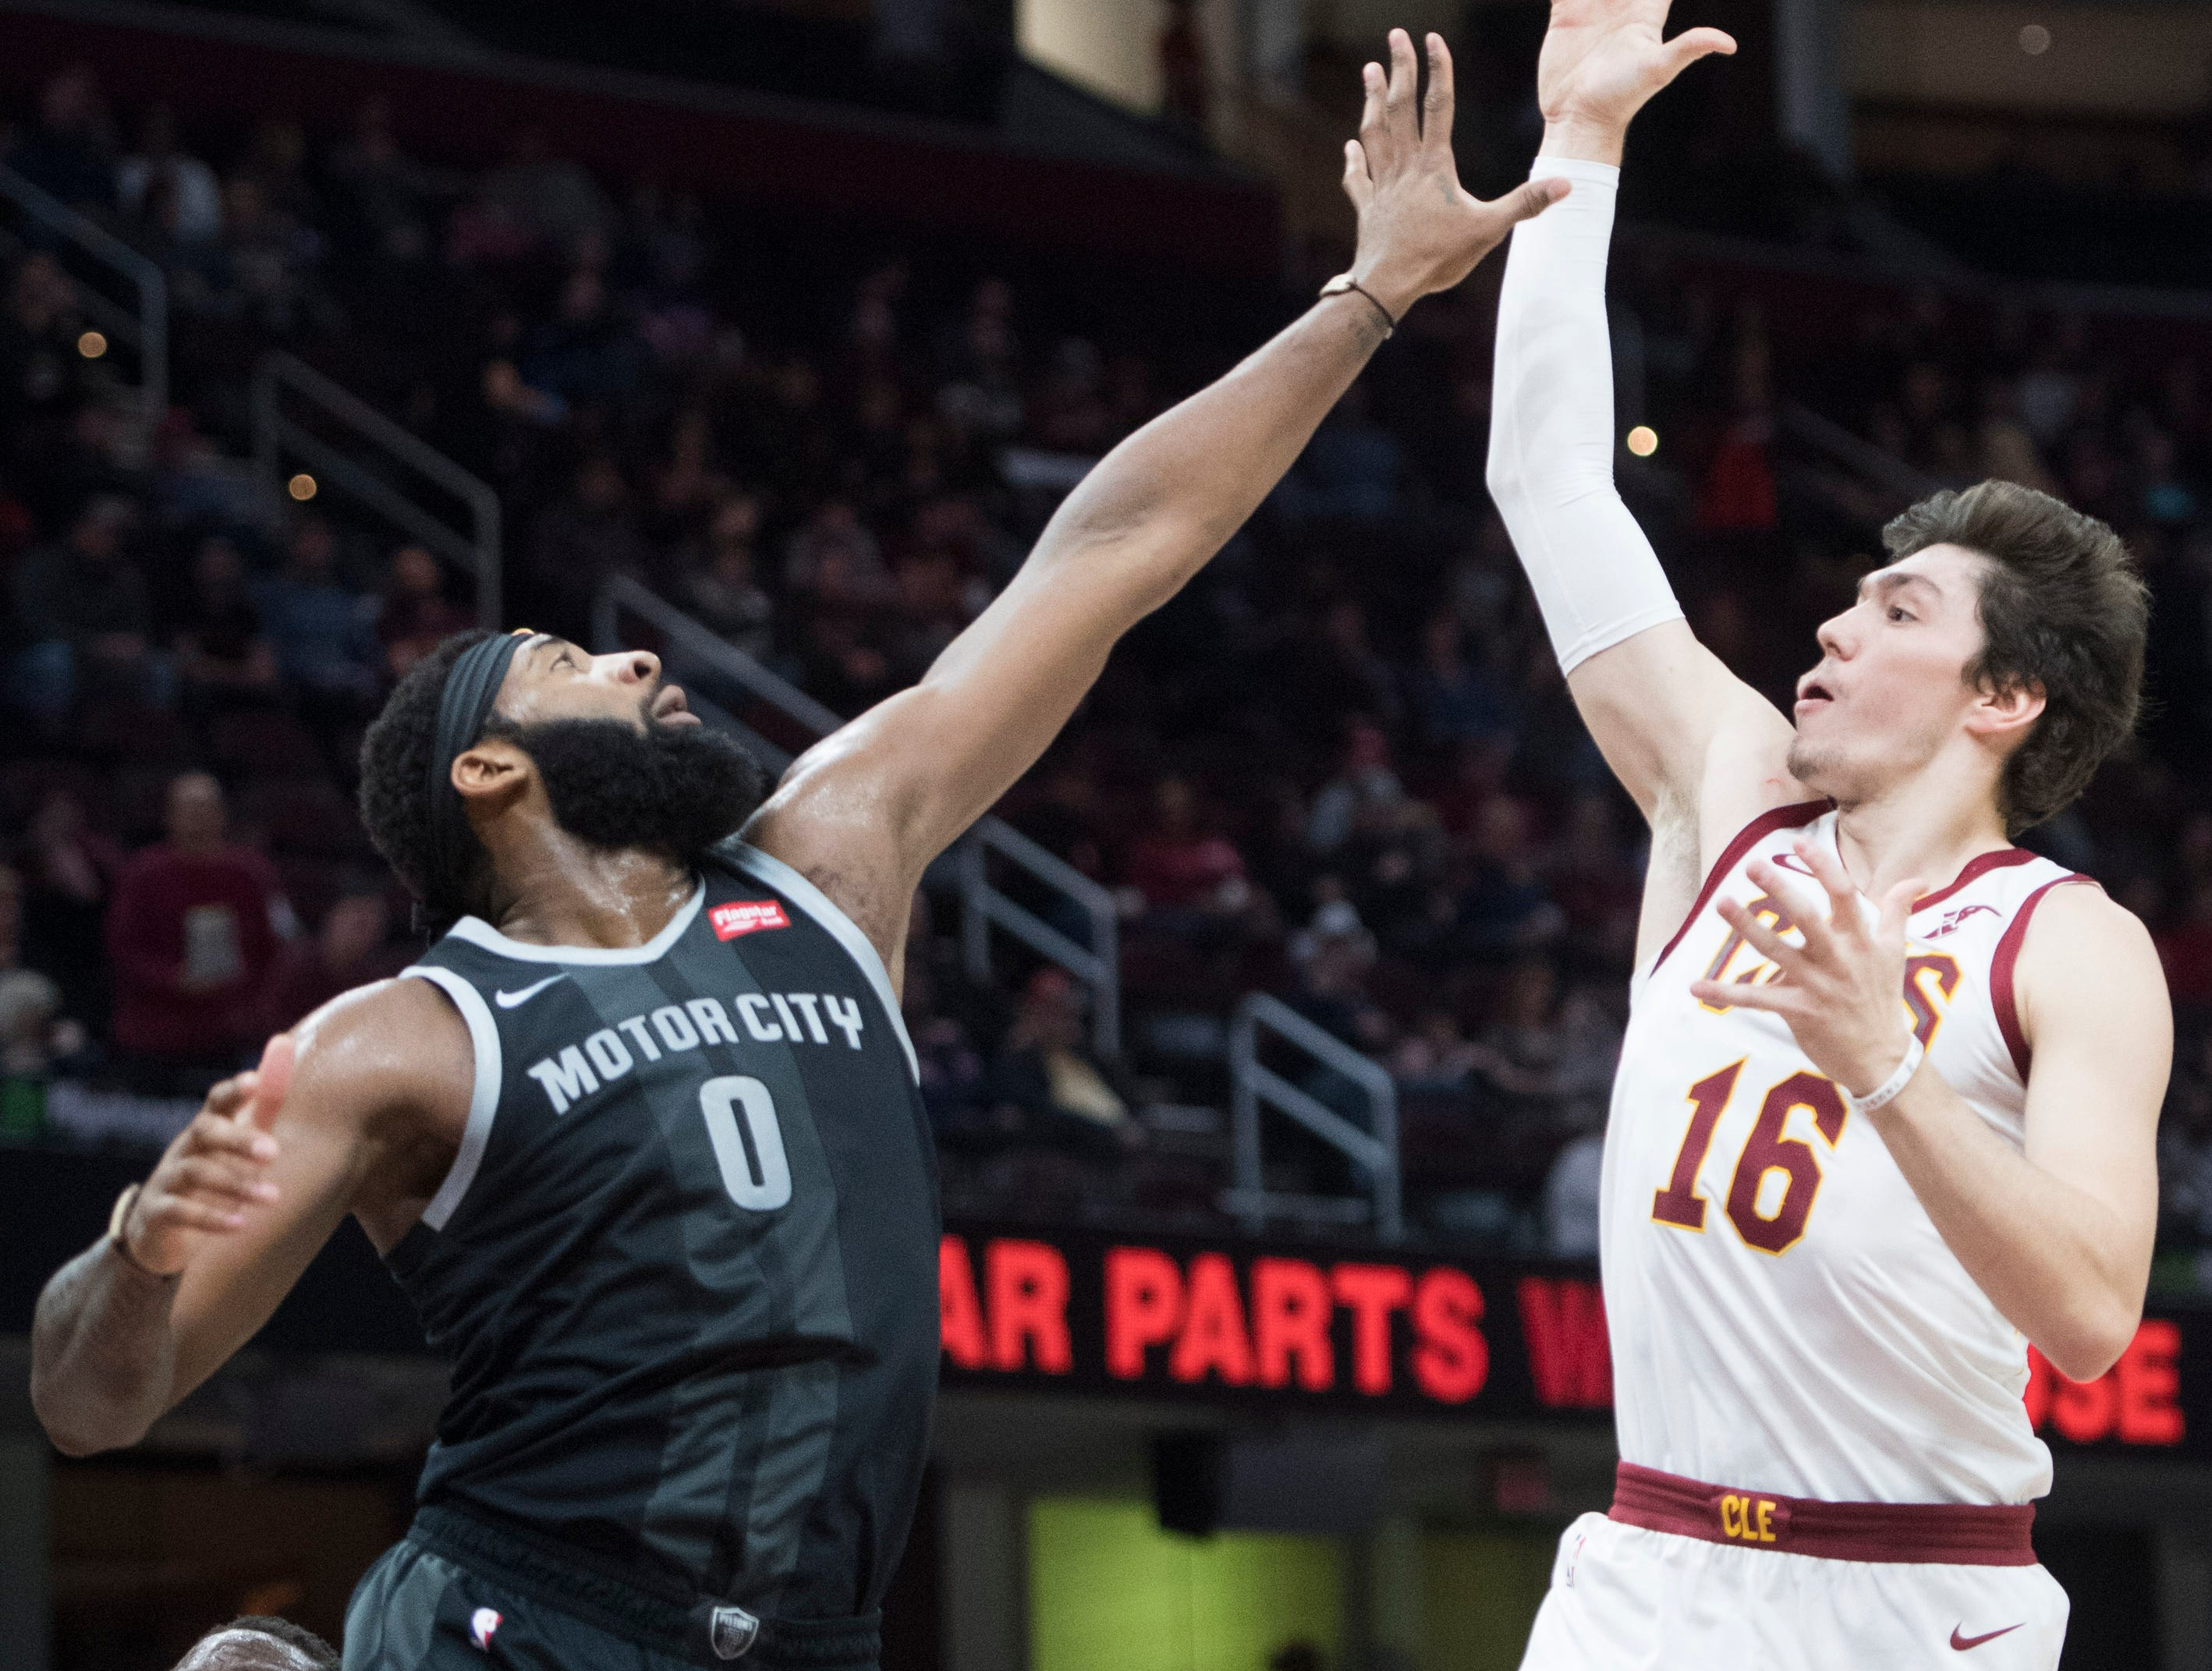 Cleveland Cavaliers' forward Cedi Osman, from Turkey, shoots over the defense of Detroit Pistons' center Andre Drummond in the first half of an NBA basketball game,